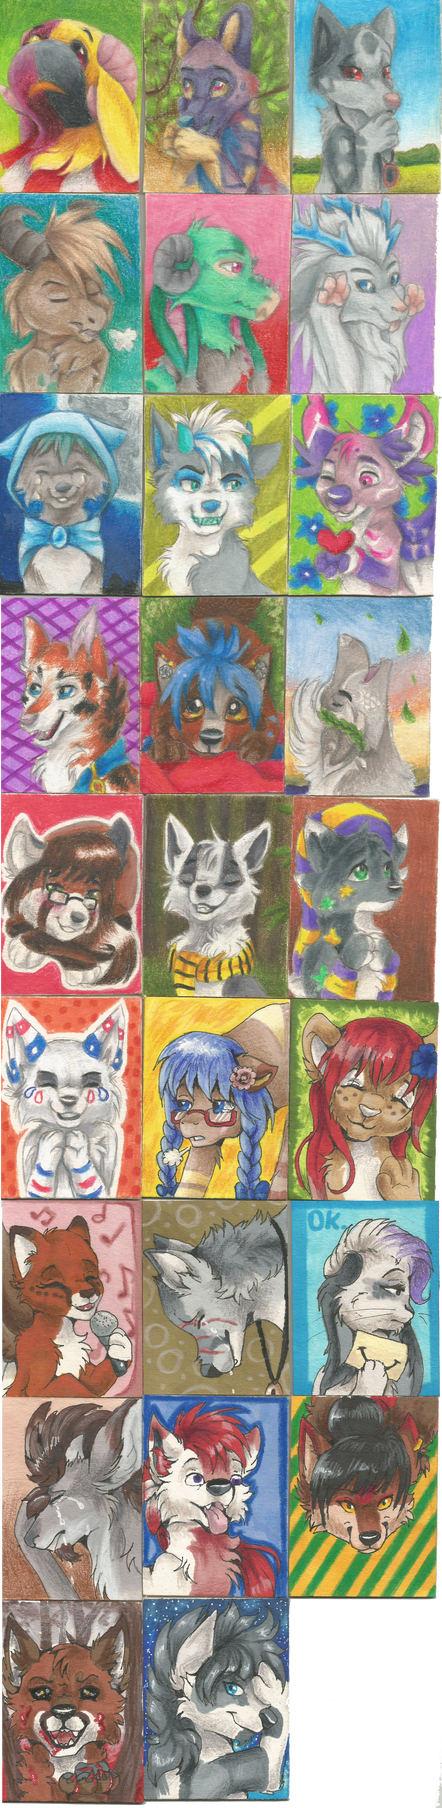 26/100 ACEO project by Kyasarinn